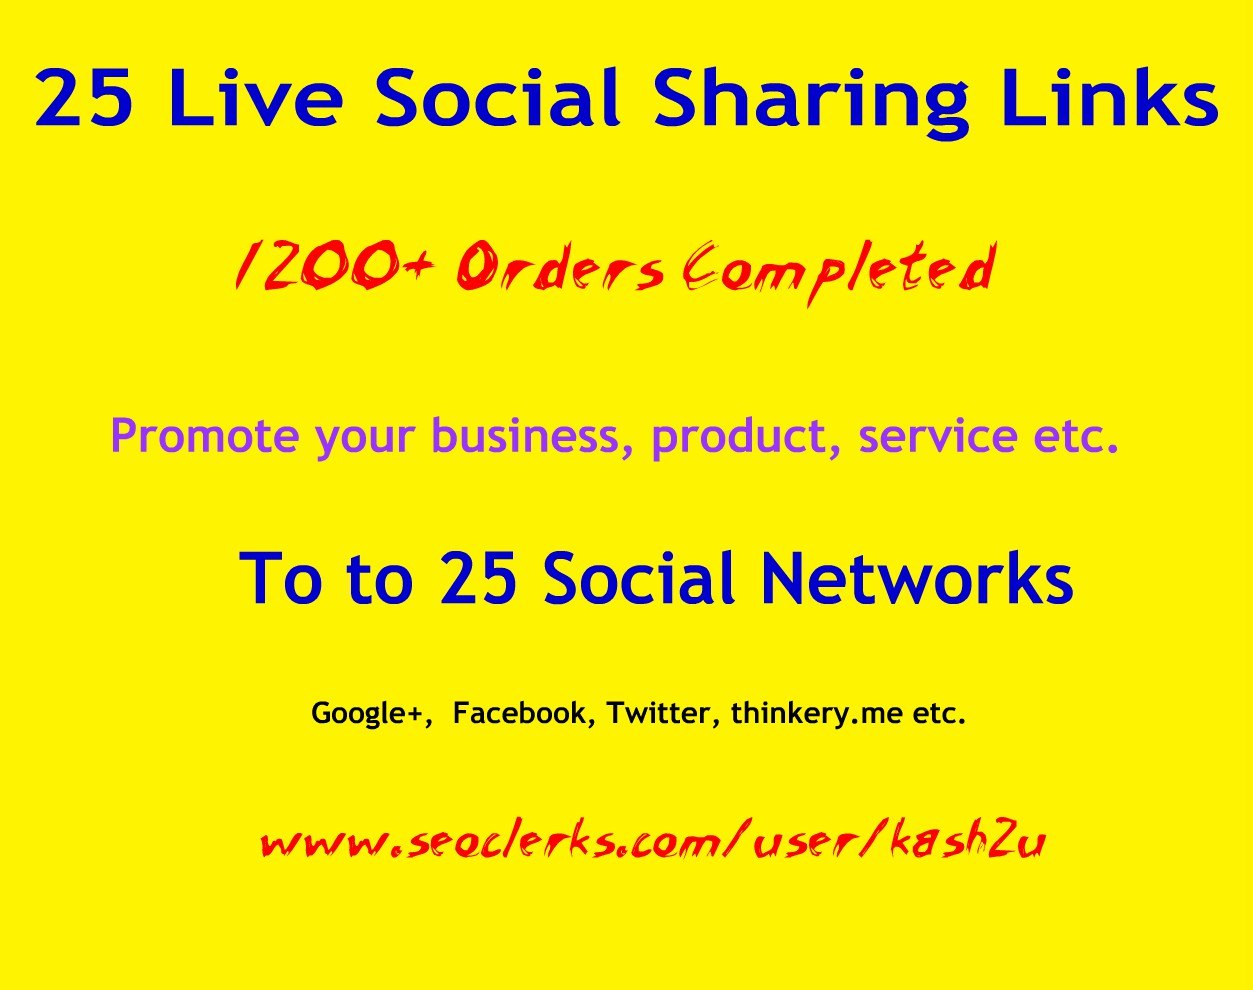 Instant 25 Live Social Bookmarking Links within 24 ho...